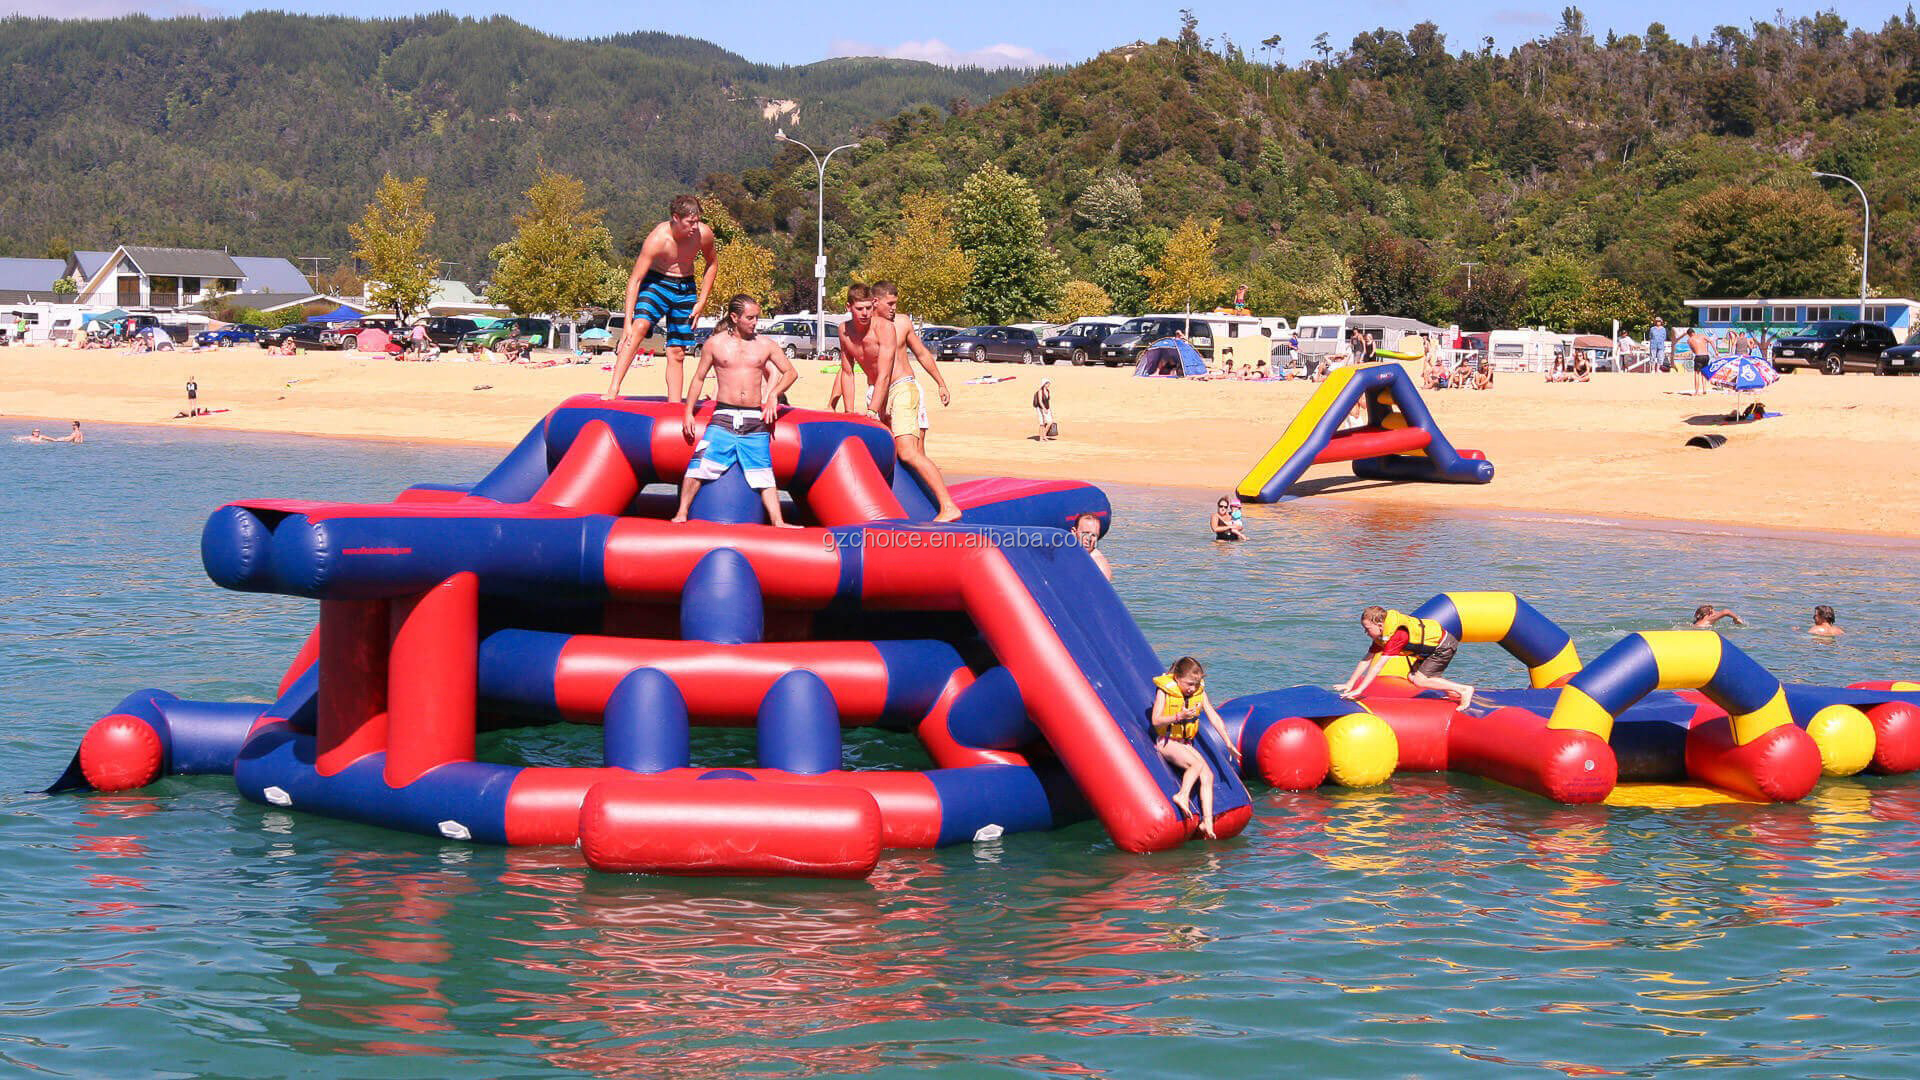 Commercial Use Adult Water Giant Inflatable Obstacle Course Floating Inflatable Water Park